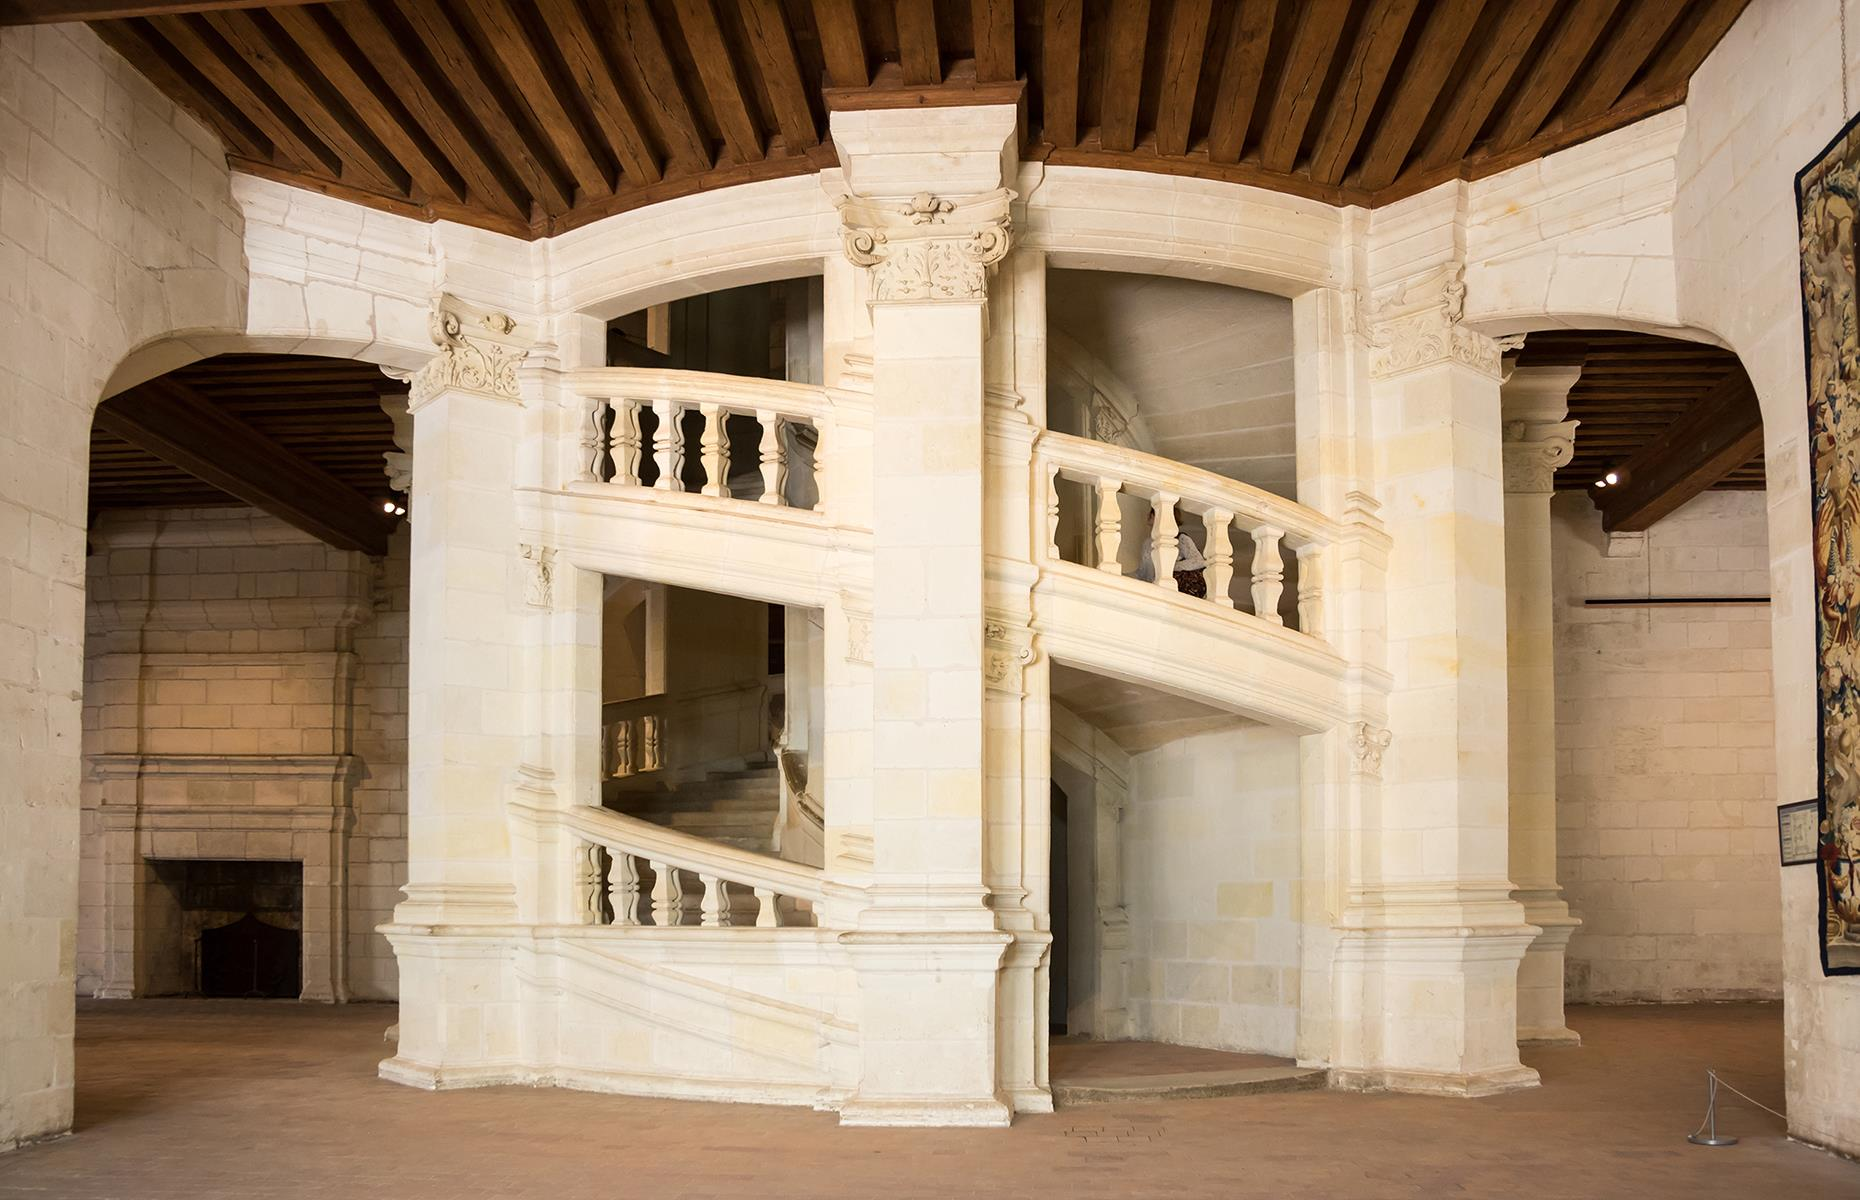 """Slide 44 of 53: Although the château's interior is as grand as the outside it's the famous double staircase that's most alluring. The """"double helix"""" serves all the château's many floors and is designed so that if two people are using each staircase, they can see each other through the windows yet never cross paths."""